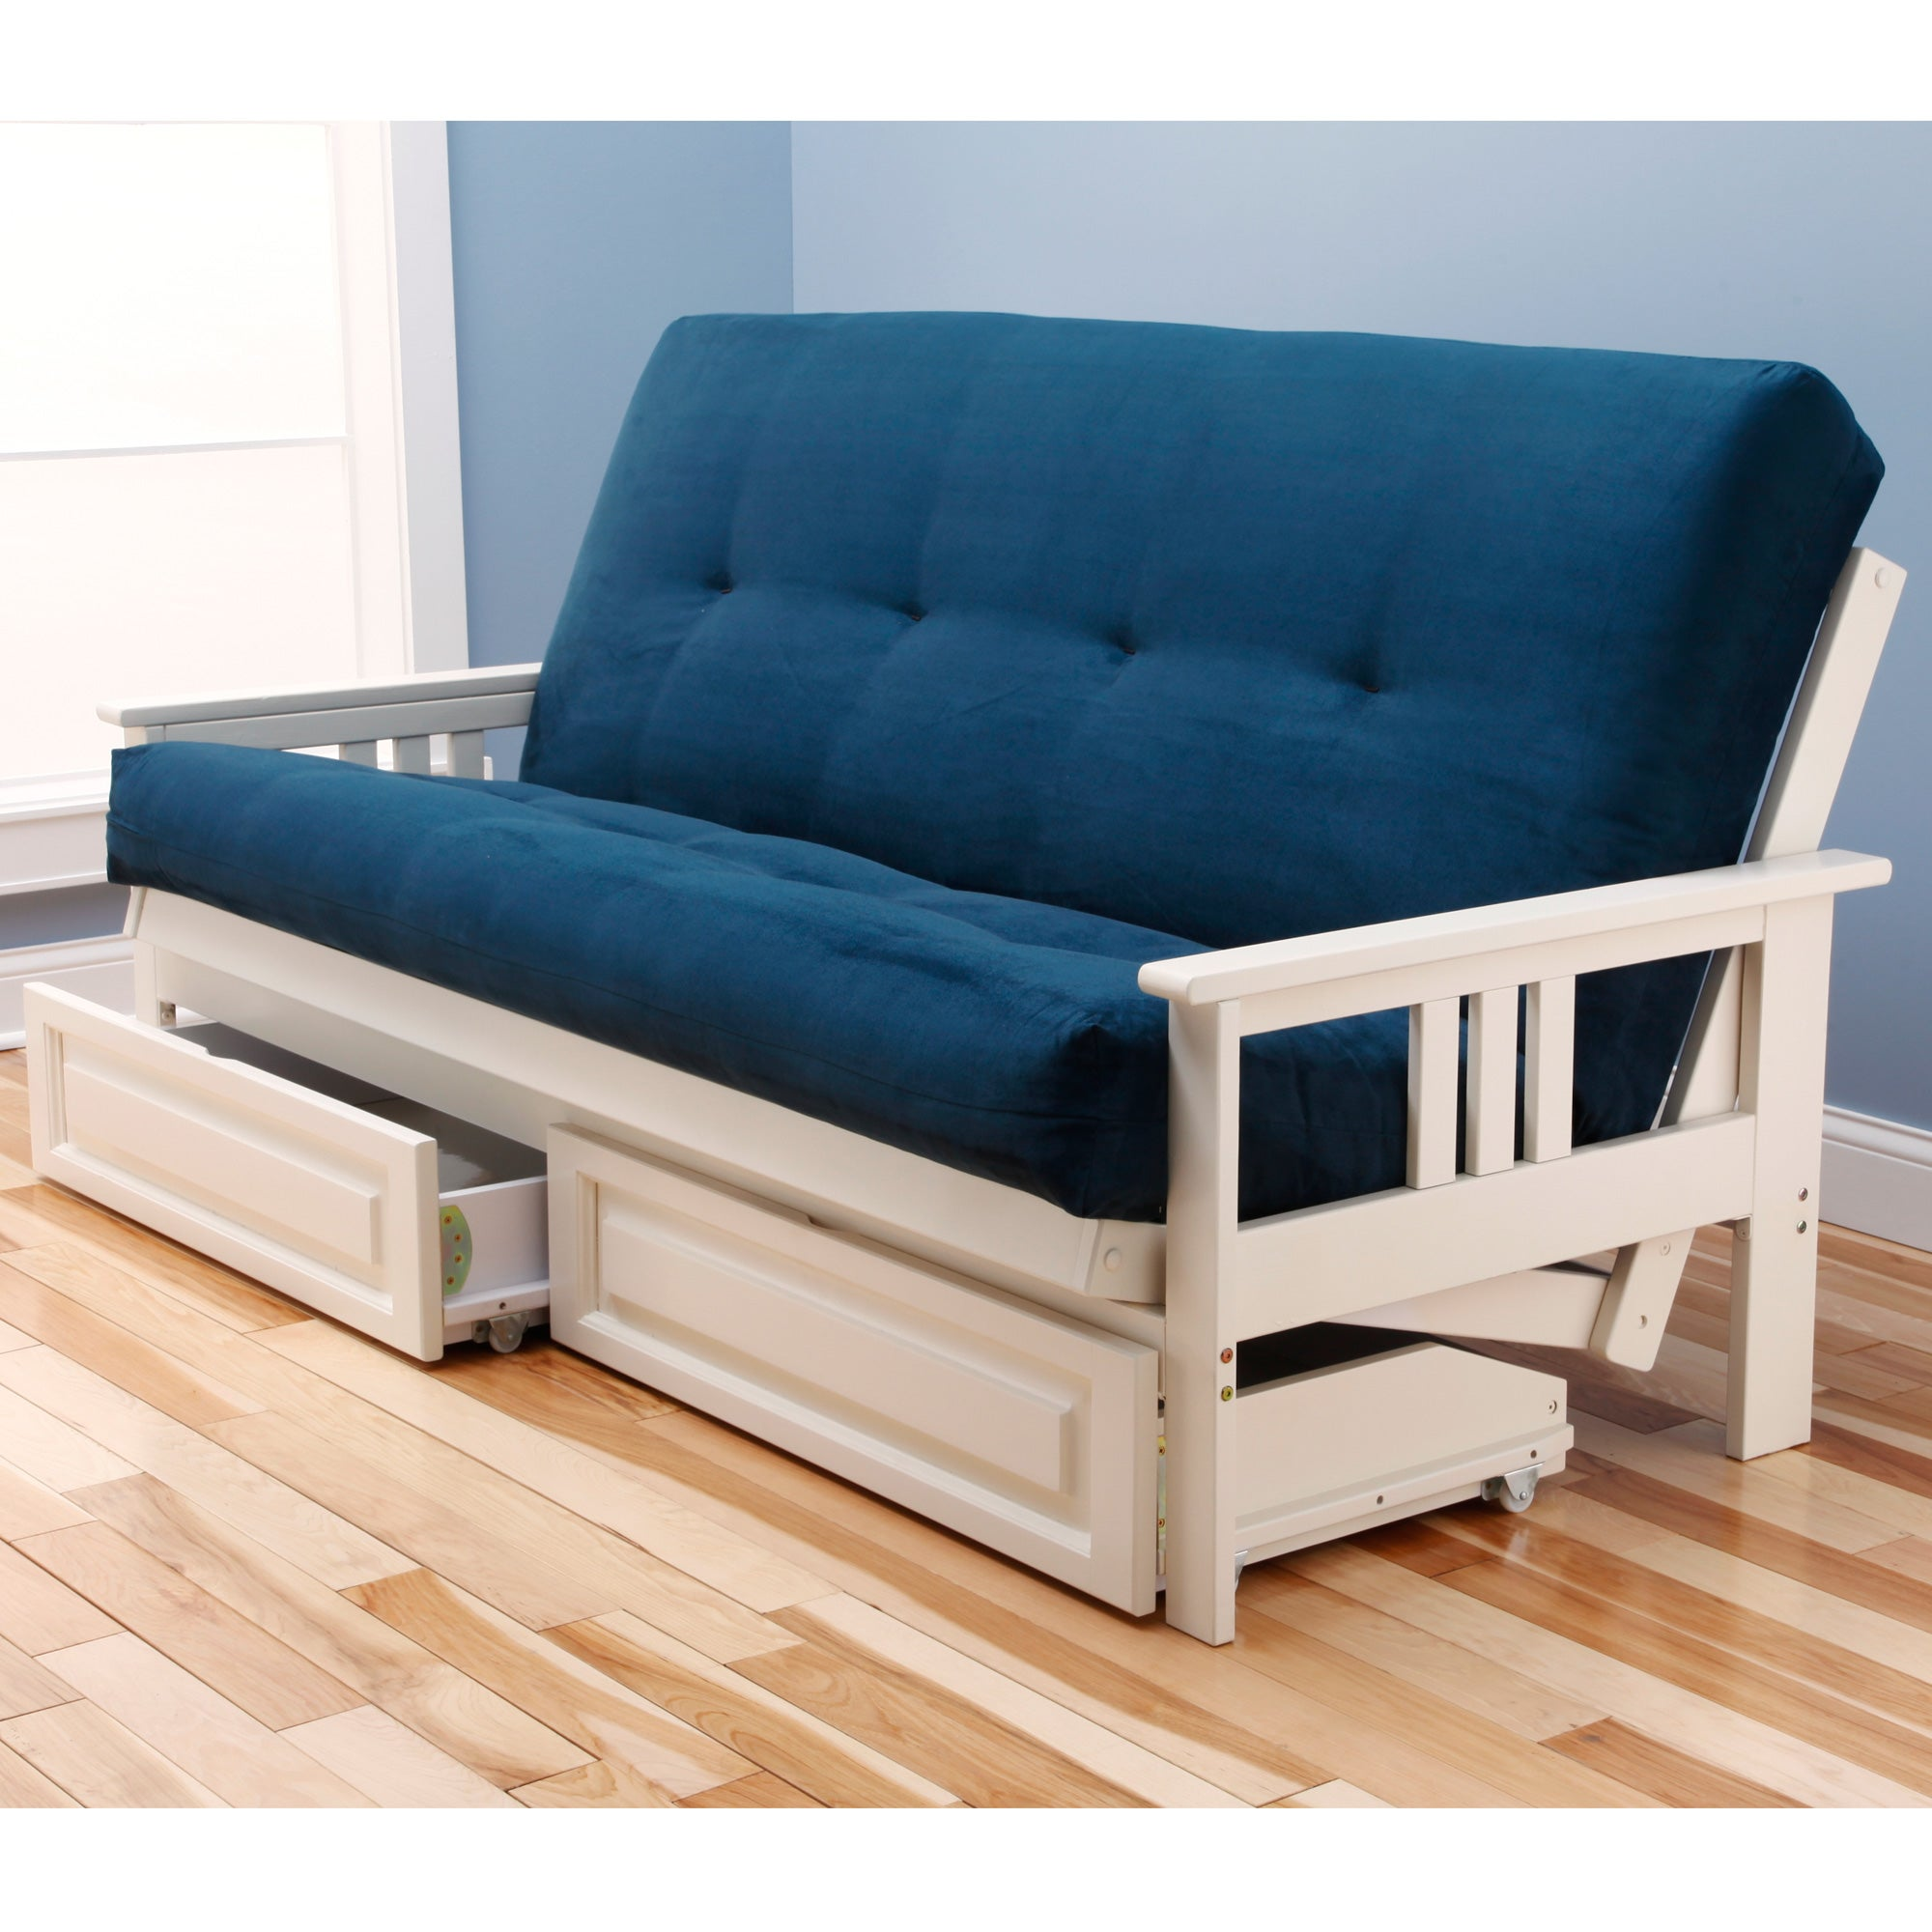 Somette Suedette Full Size Solid Futon Cover Free Shipping Today 15416414